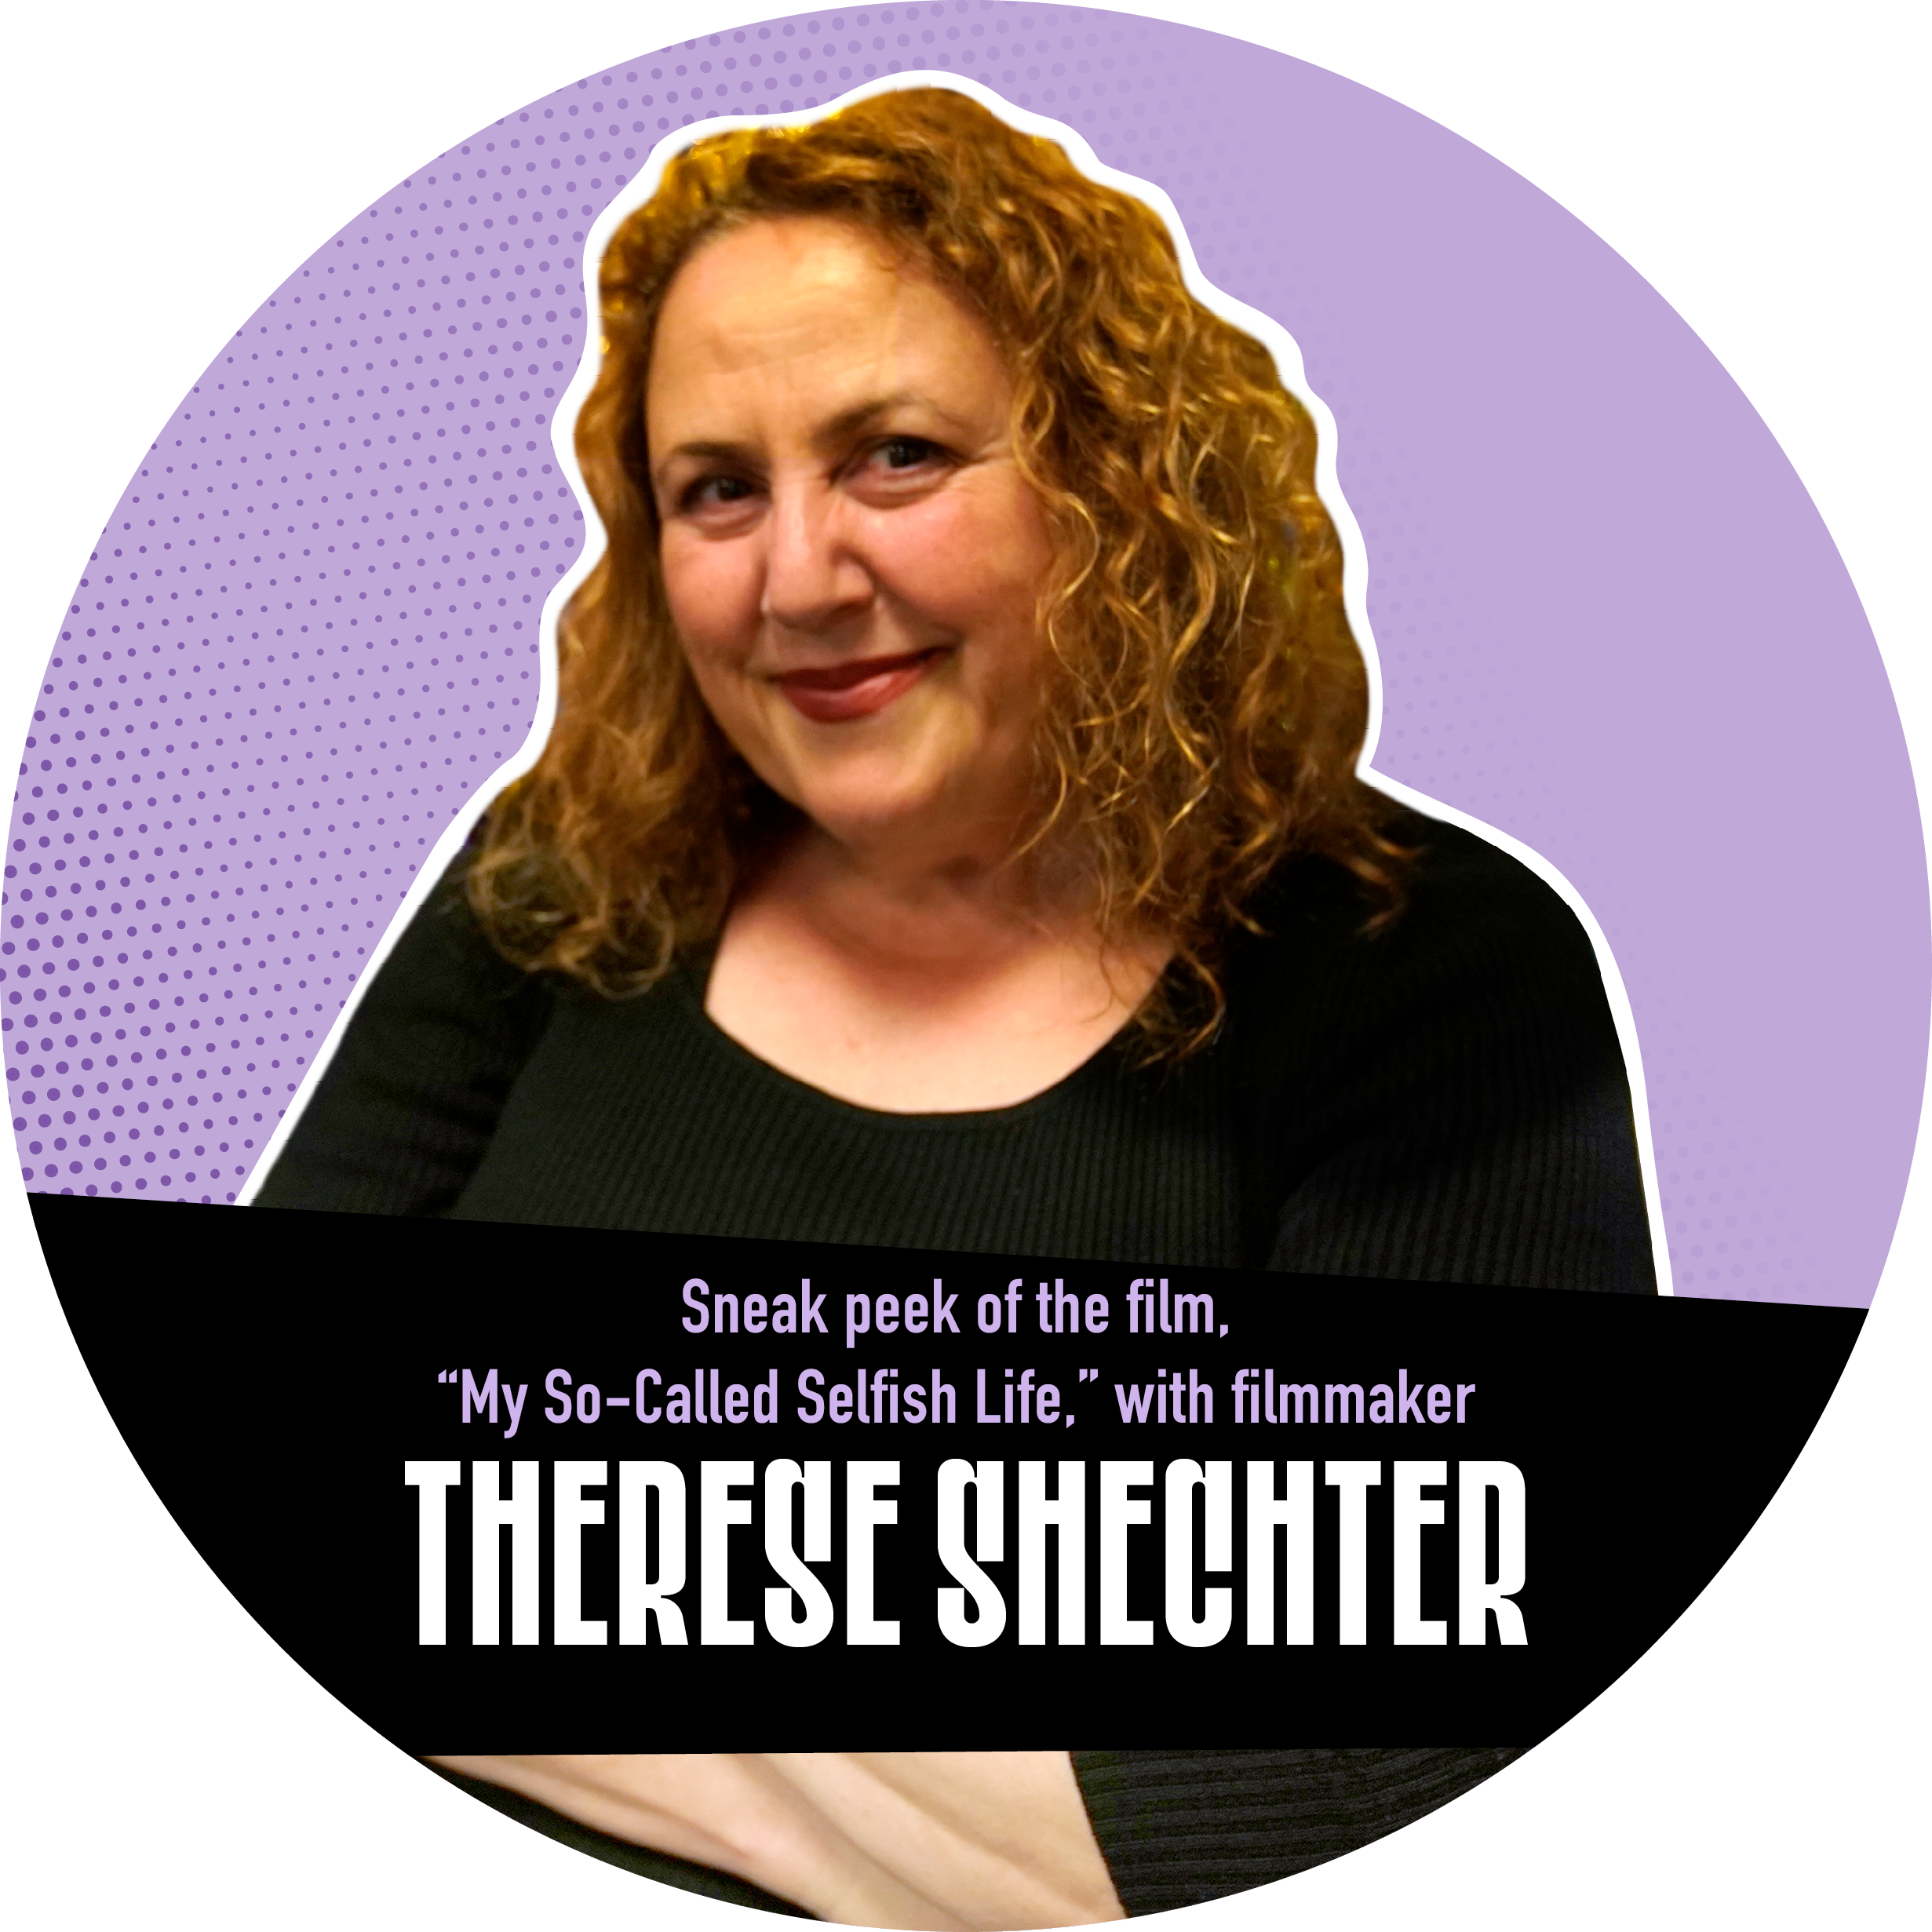 """Portrait of Therese Shechter against a purple background with a banner that reads """"Sneak peek of the film, """"My So-Called Selfish Life,"""" with filmmaker Therese Shechter"""